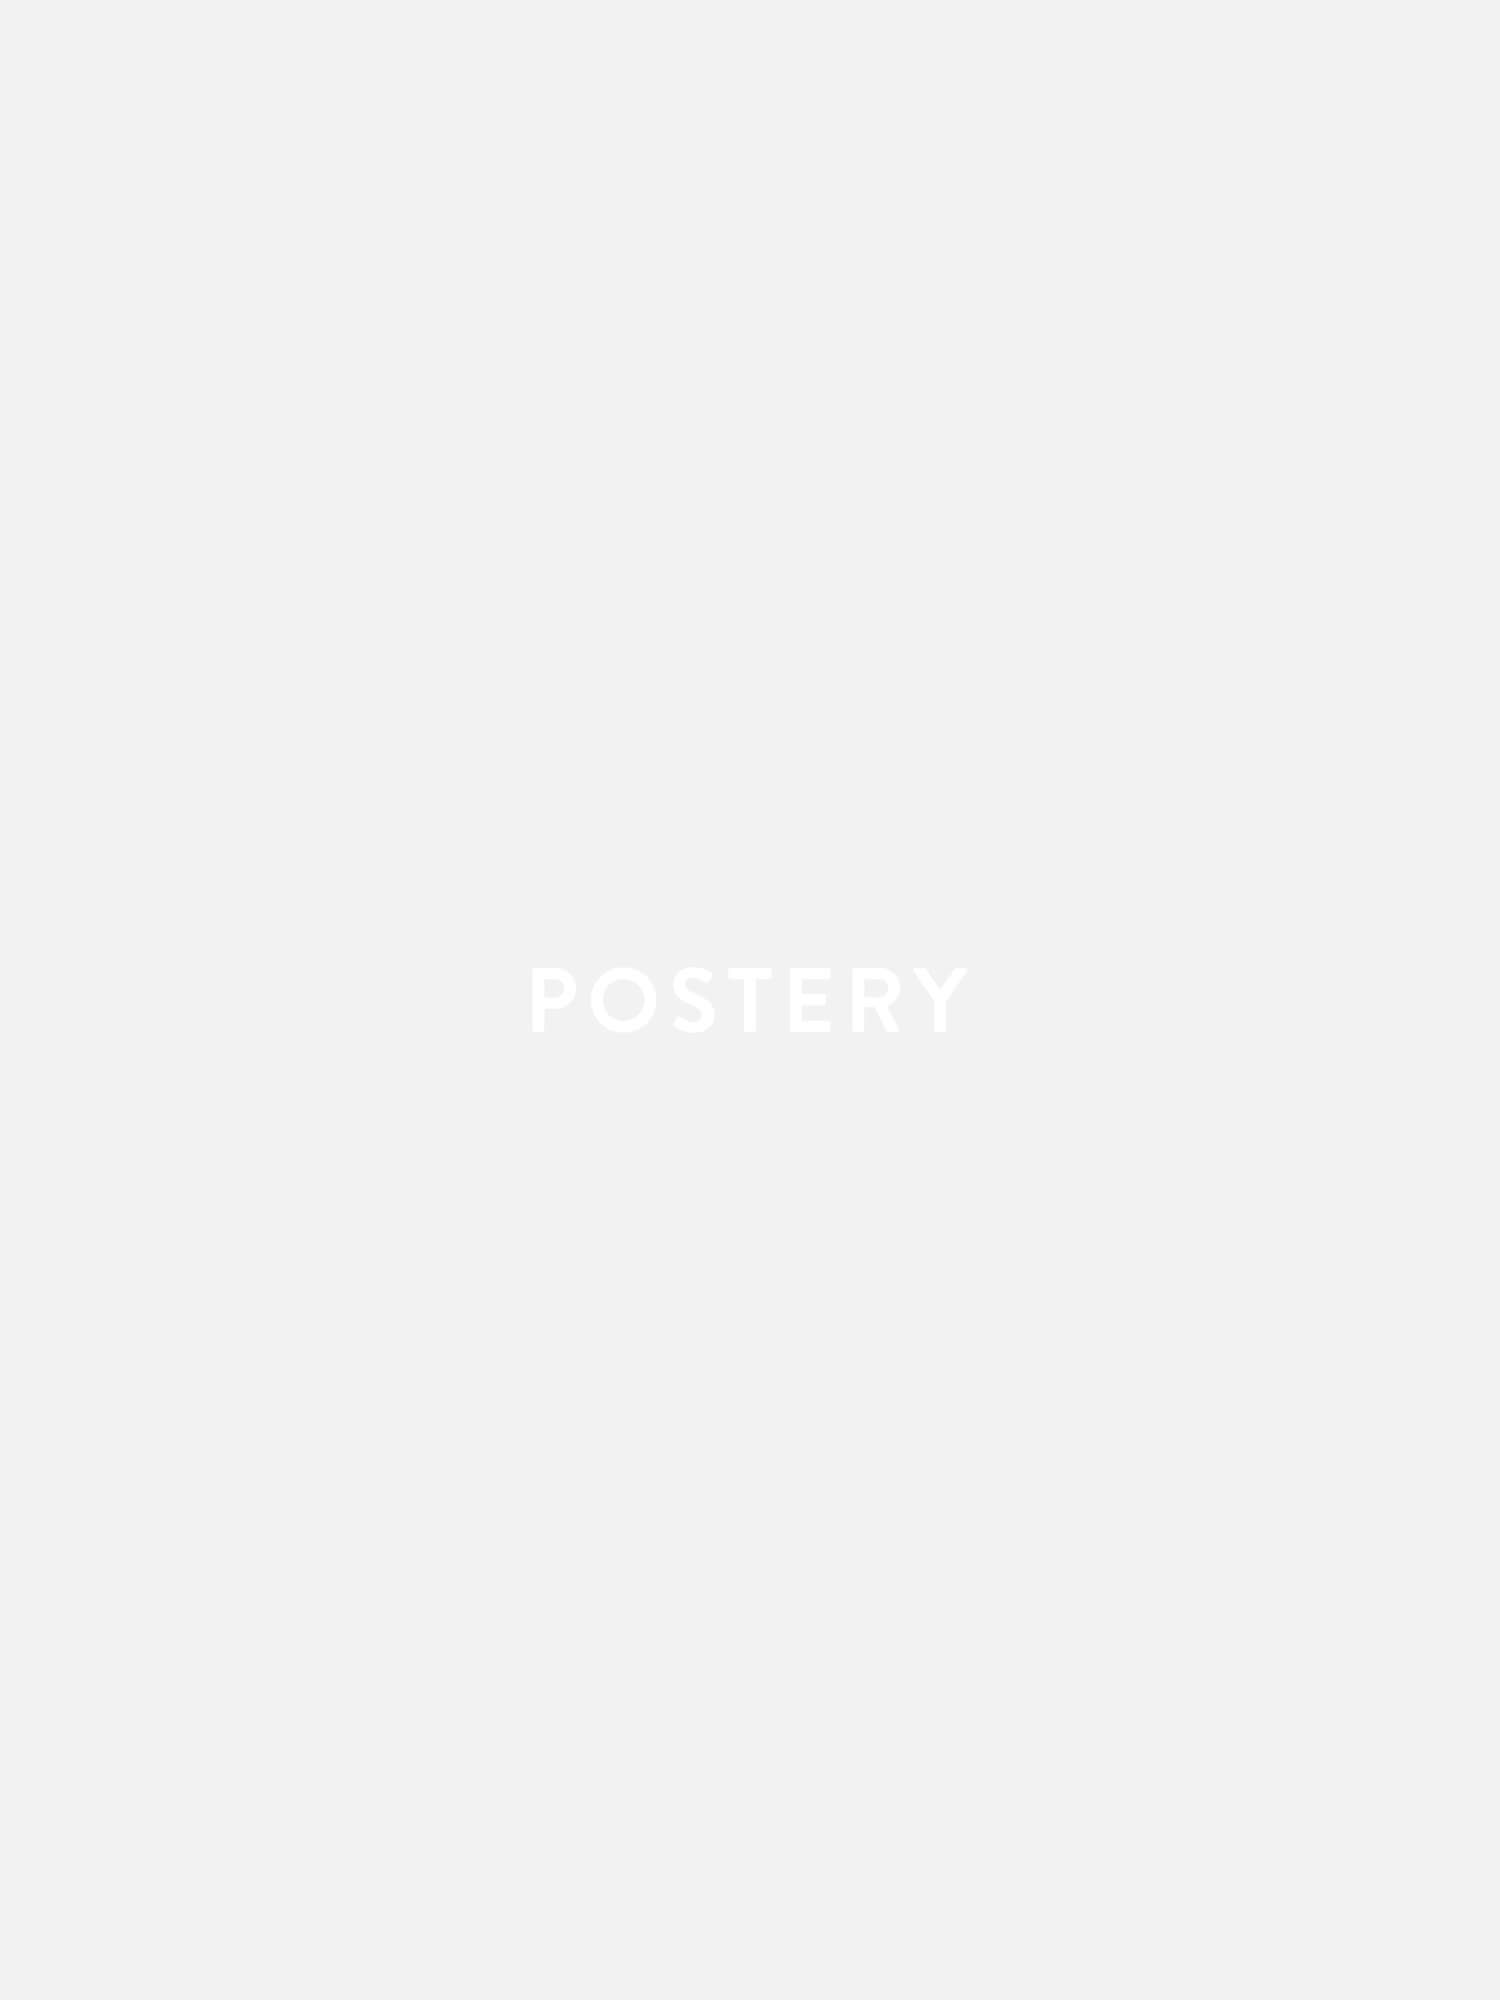 Classic Car Door Poster